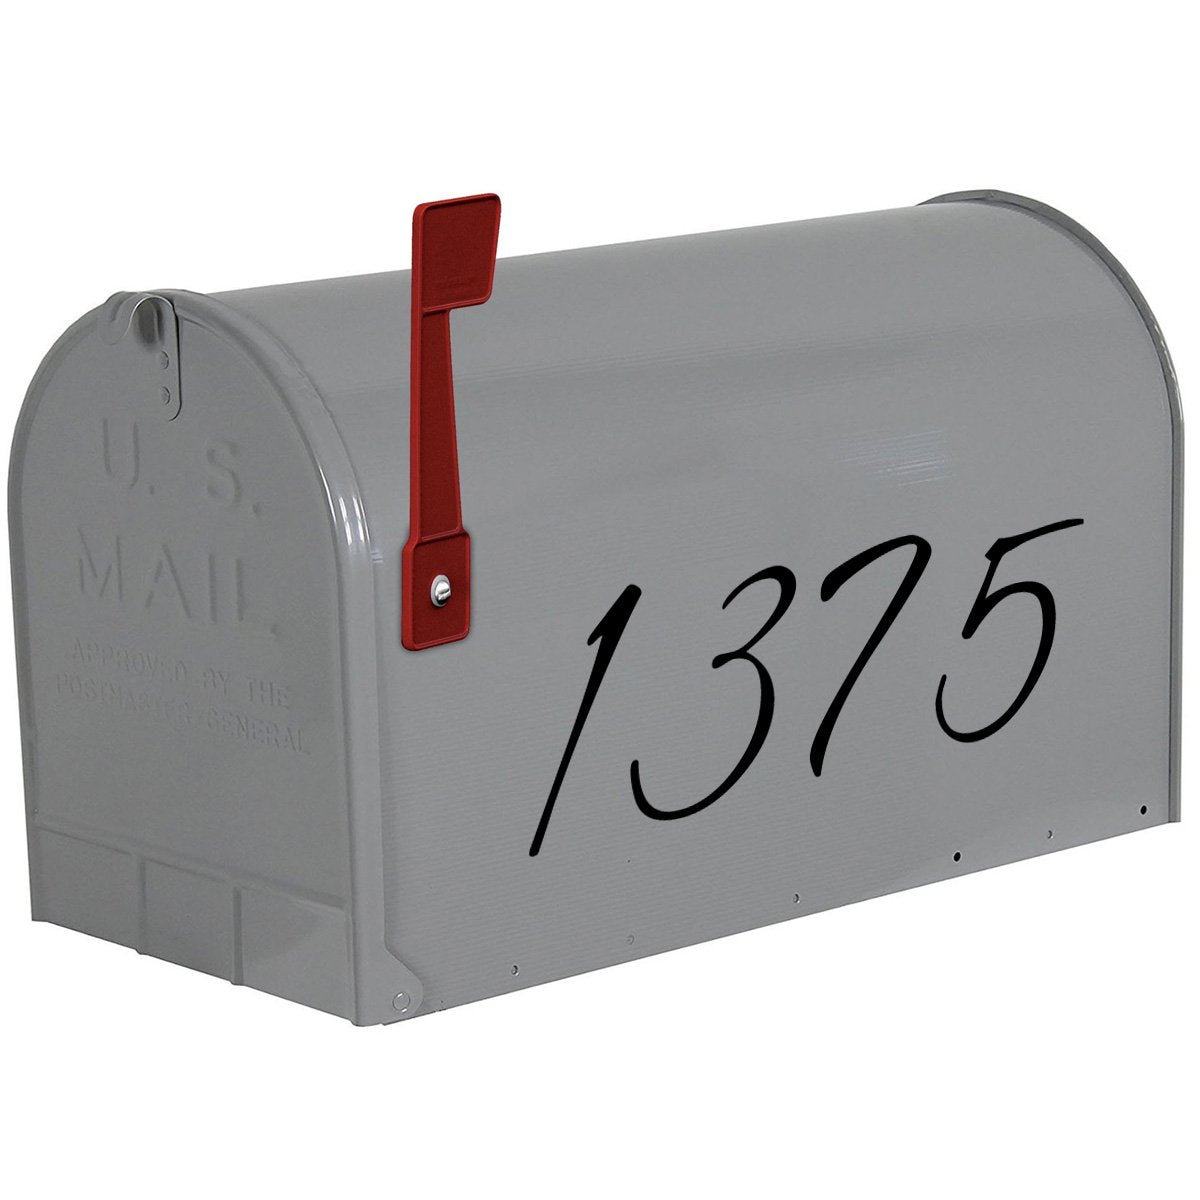 VWAQ Custom Mailbox Vinyl Decal - House Number Address Stickers - CMB25 - VWAQ Vinyl Wall Art Quotes and Prints